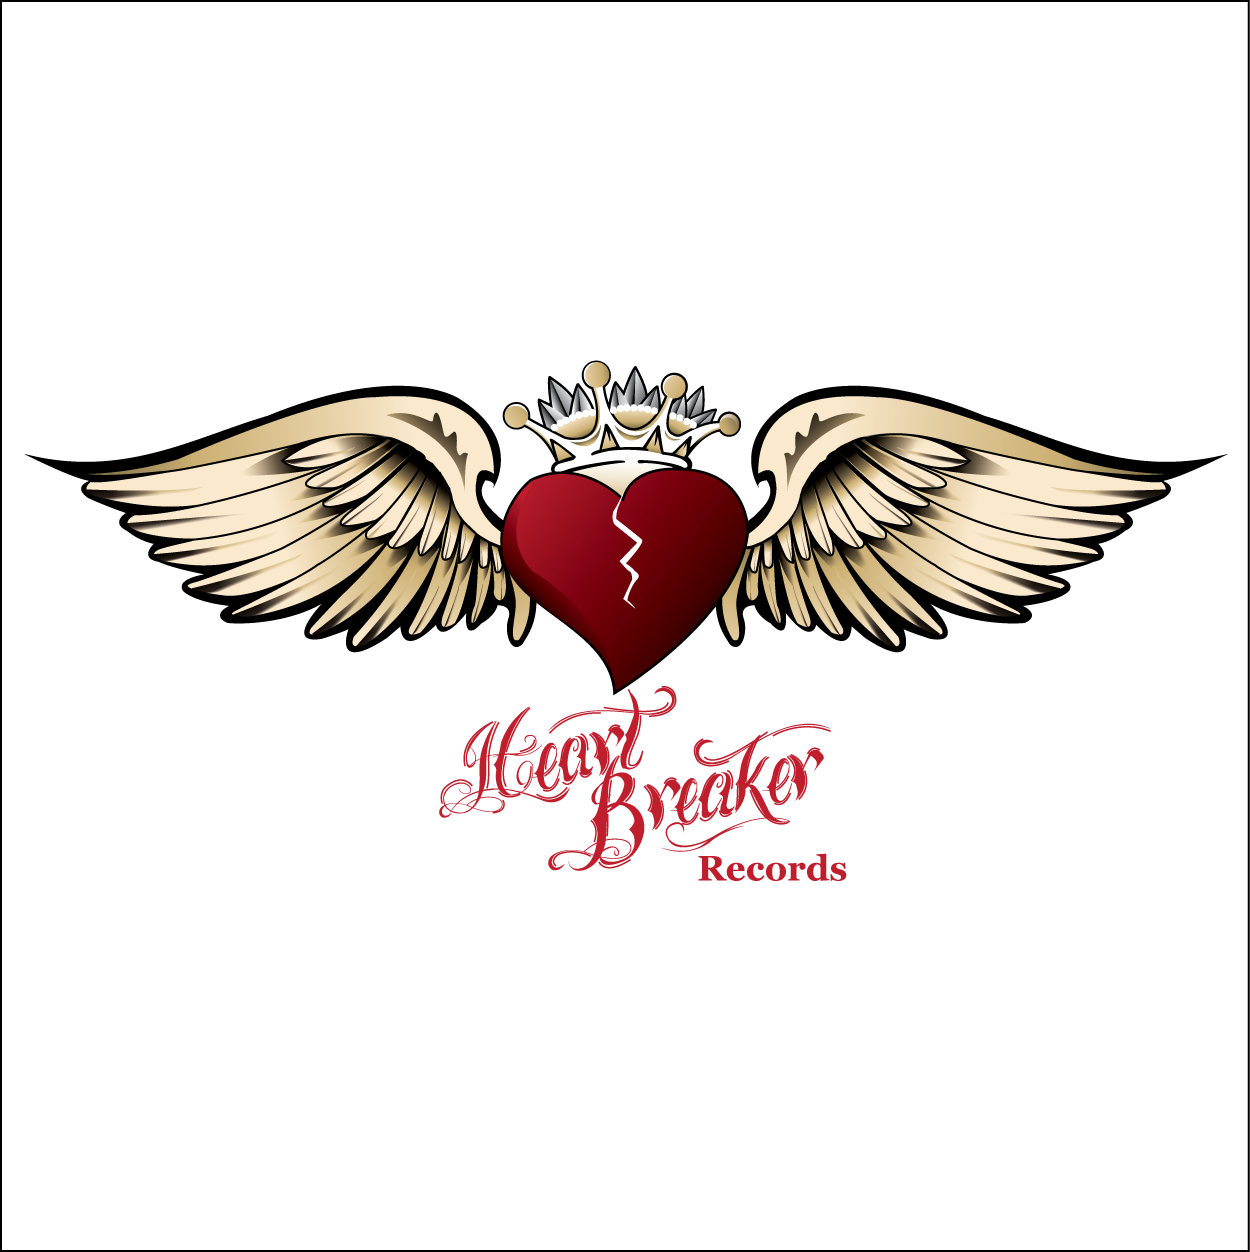 Logo Design by trabas - Entry No. 59 in the Logo Design Contest Heartbreaker Records.